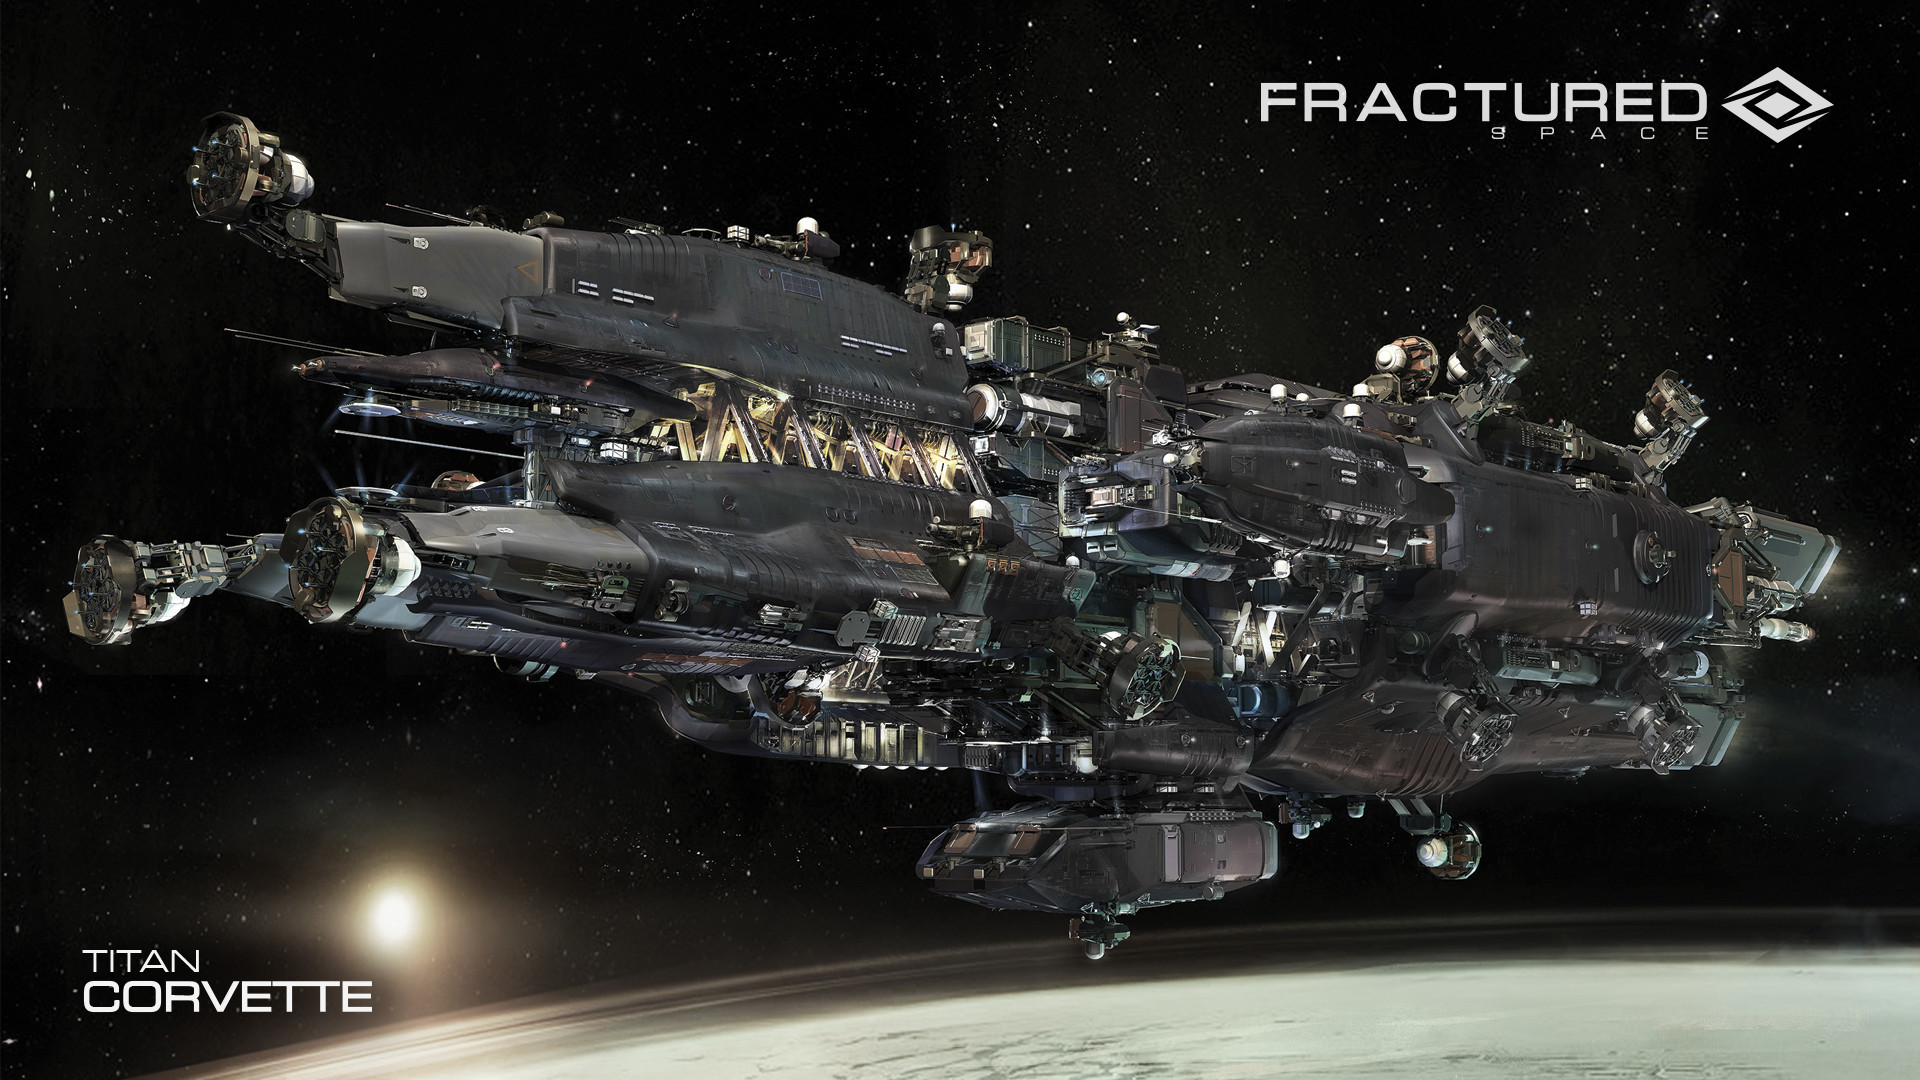 Steam Community :: Guide :: All Fractured Space Wallpapers, Available In HD